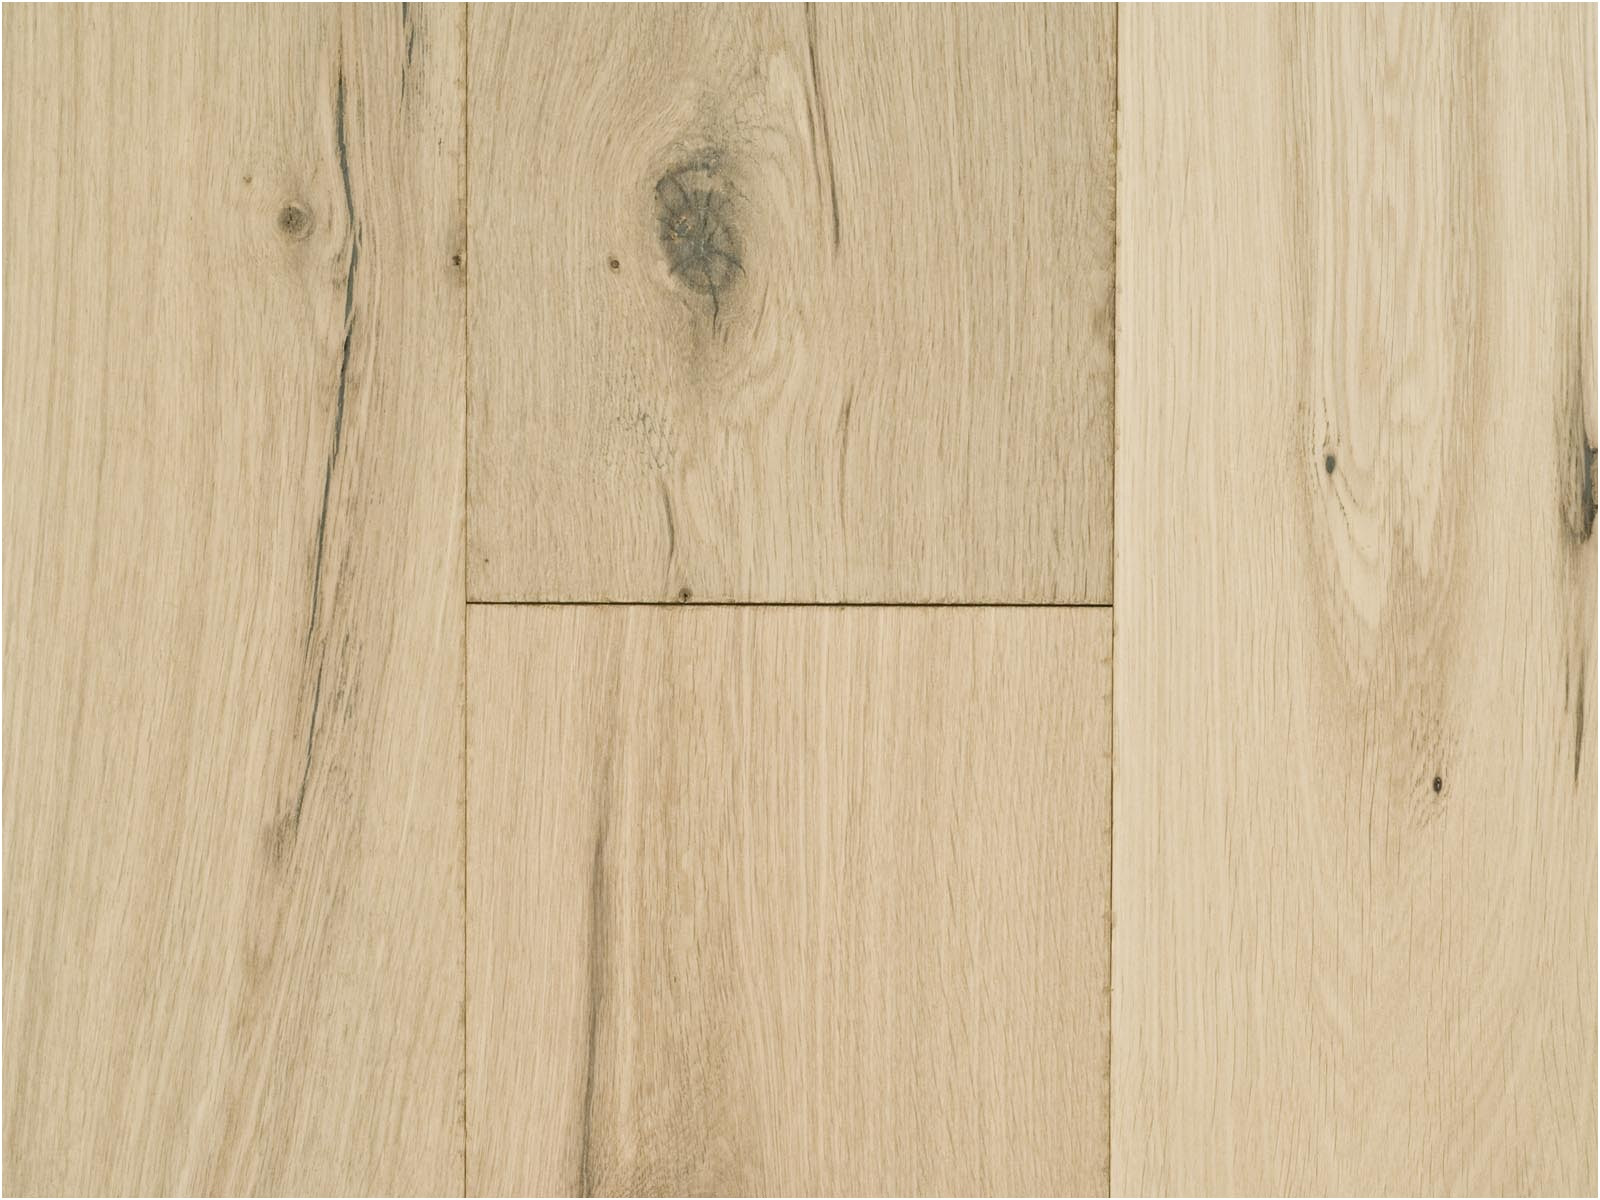 hardwood flooring 2016 of white oak engineered hardwood flooring new rustic smoke stain 5 with regard to related post